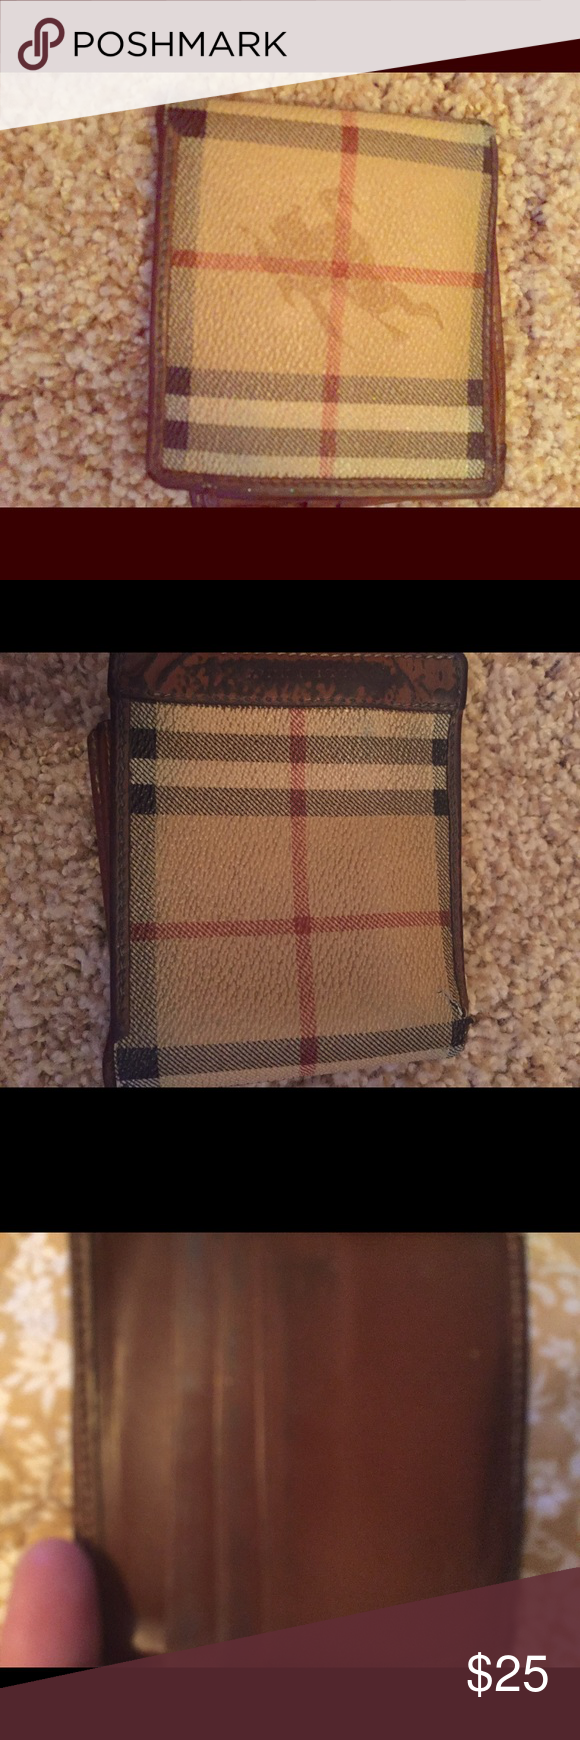 100% authentic Burberry wallet-sold as is This Burberry wallet was bought at an exchange store at the airport.  It has some glad I tried to show in the pics like the card holder part is a little broken and it's a little dirty on the outside on one side, but probably could be cleaned.  Selling as is and price will reflect flaws😊 Burberry Bags Wallets